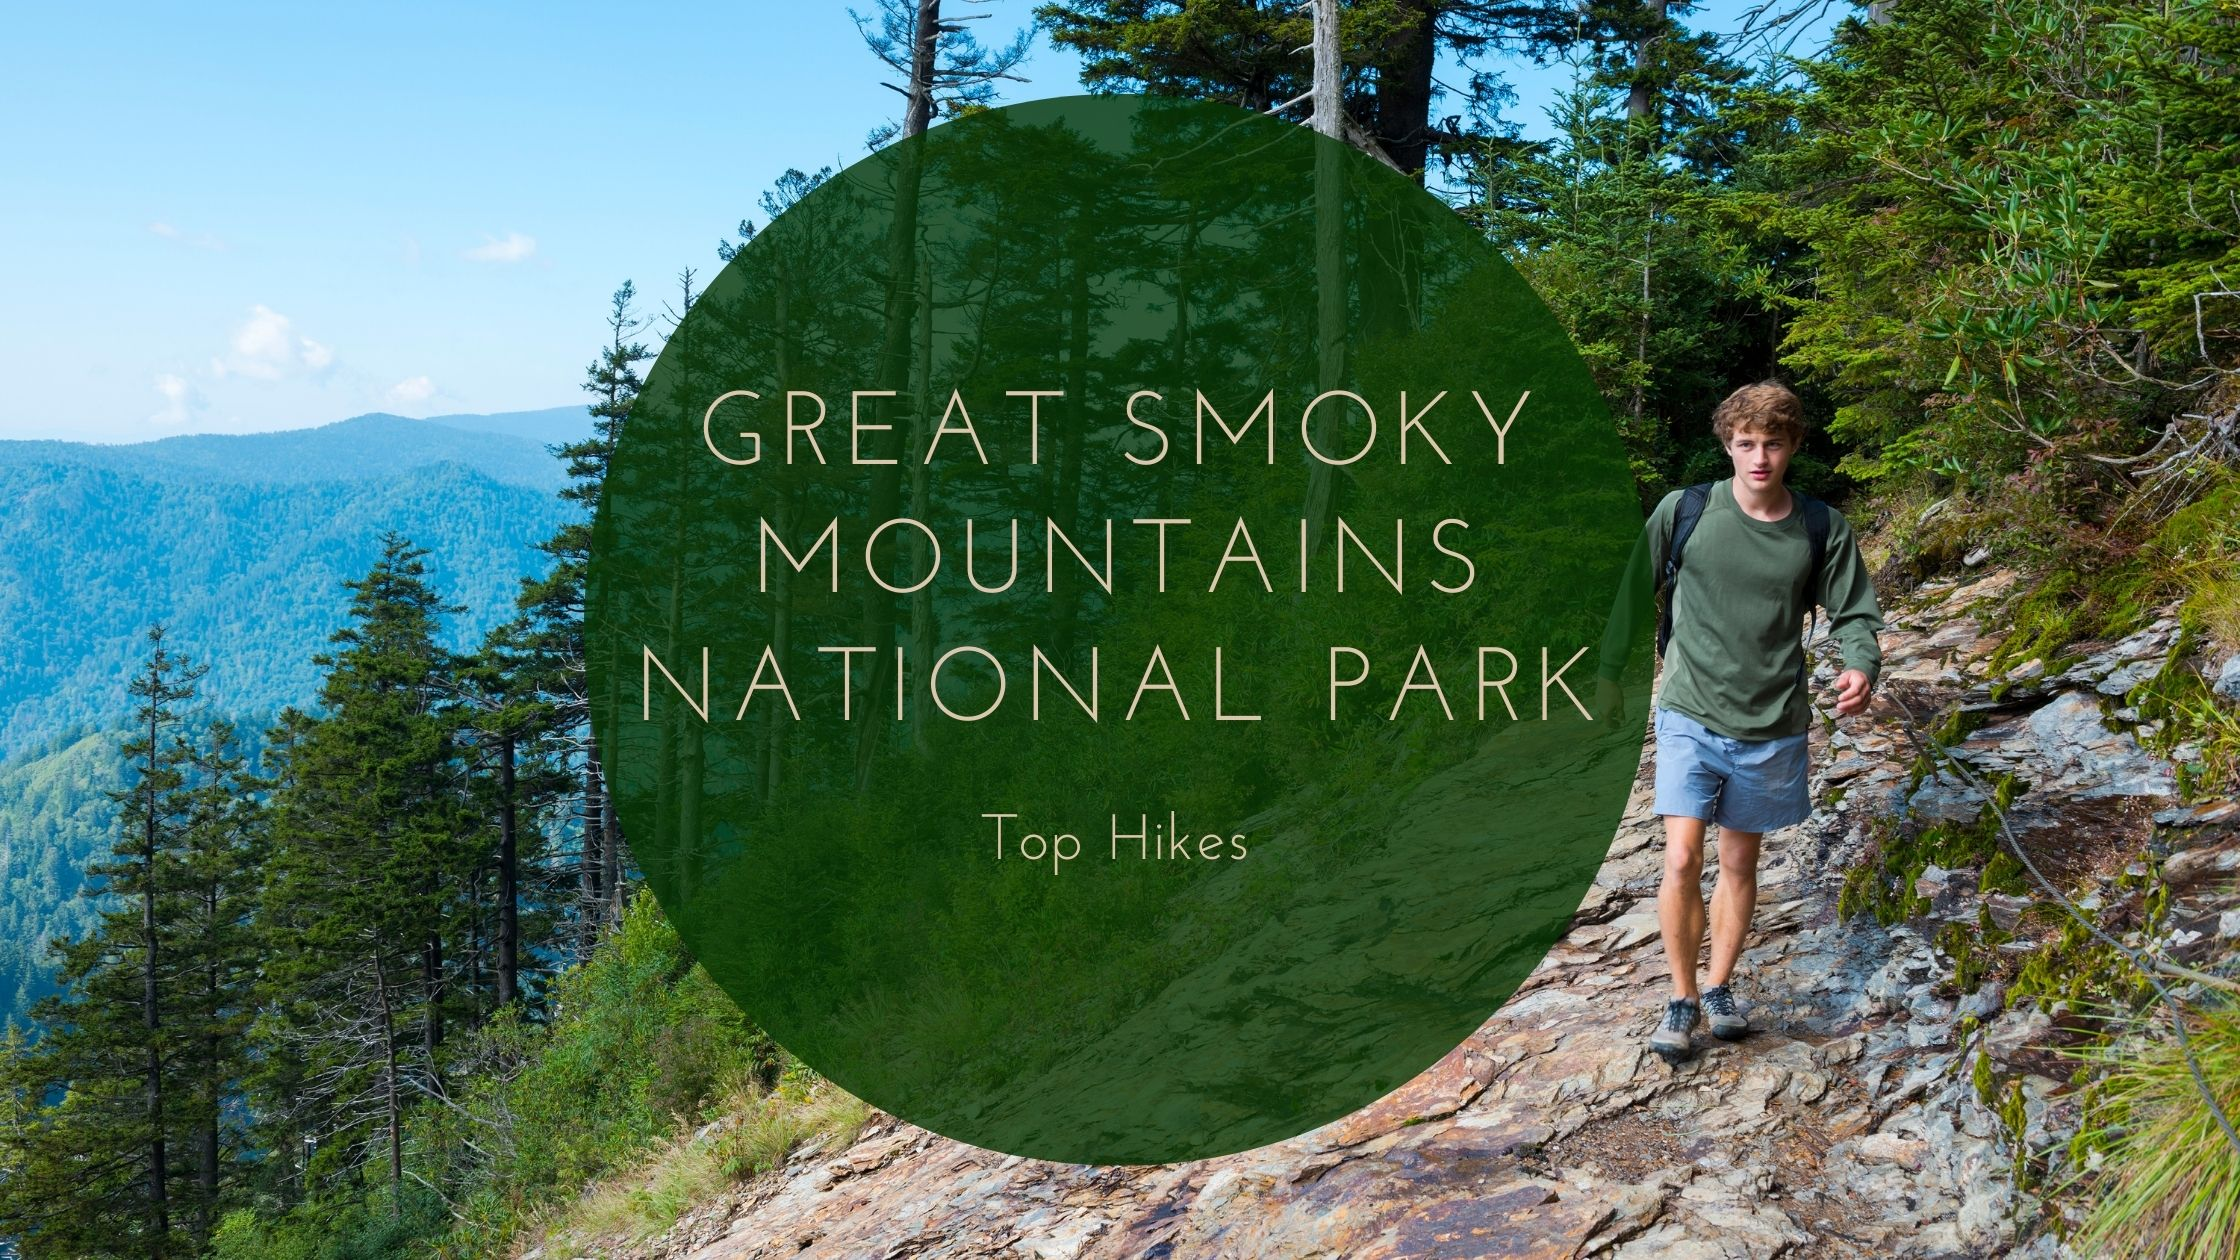 Top Hikes in Great Smoky Mountains National Park